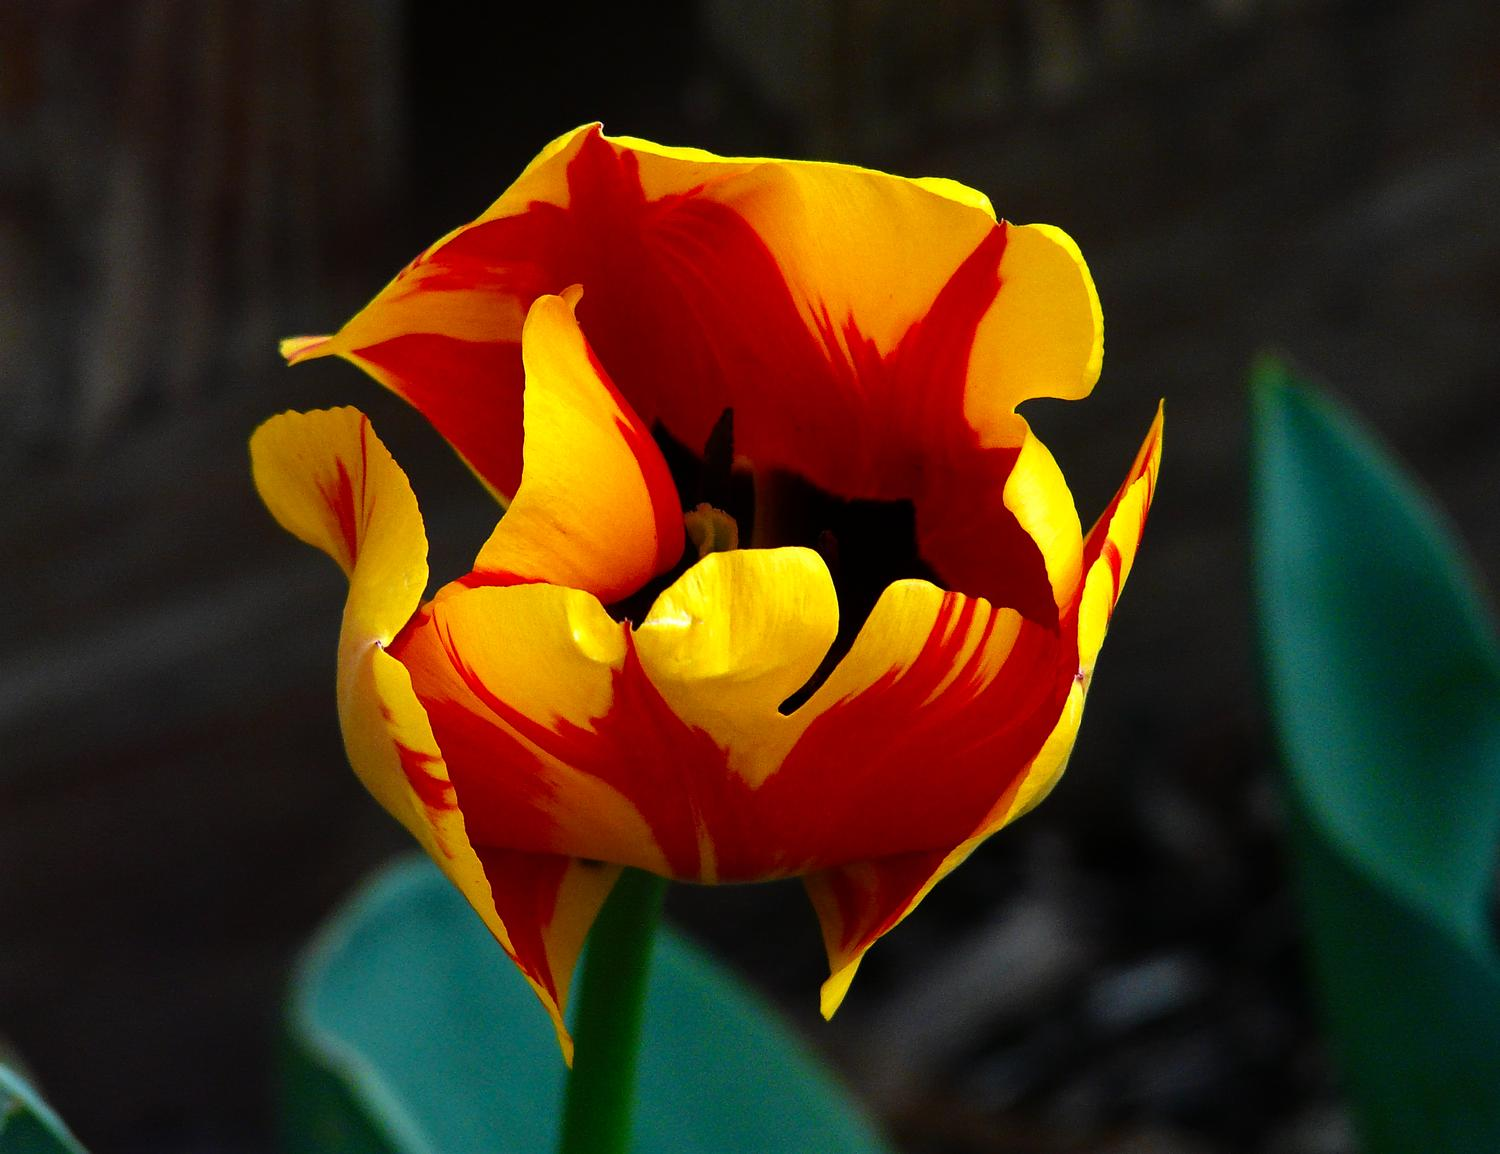 red and yellow tulip from our garden - Nature - such a precious gift - Techno-Impressionist Museum - Techno-Impressionism - art - beautiful - photo photography picture - by Tony Karp